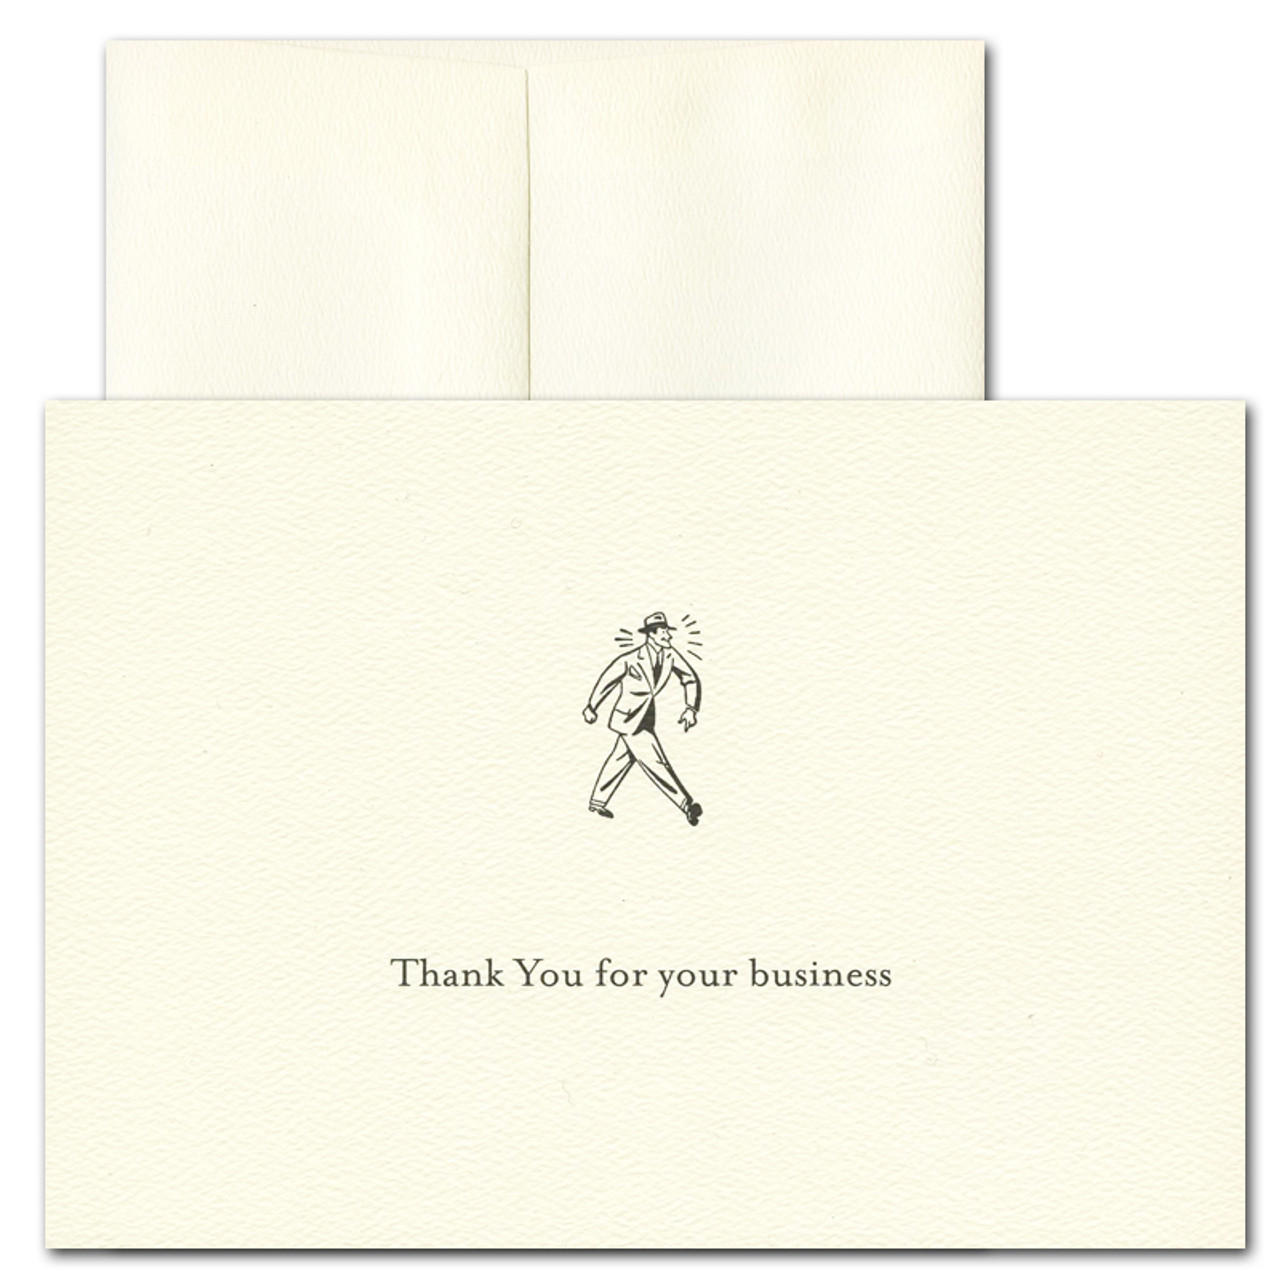 Business Thank You Card - Retro. Vintage advertising illustration and the words: Thank you for you business